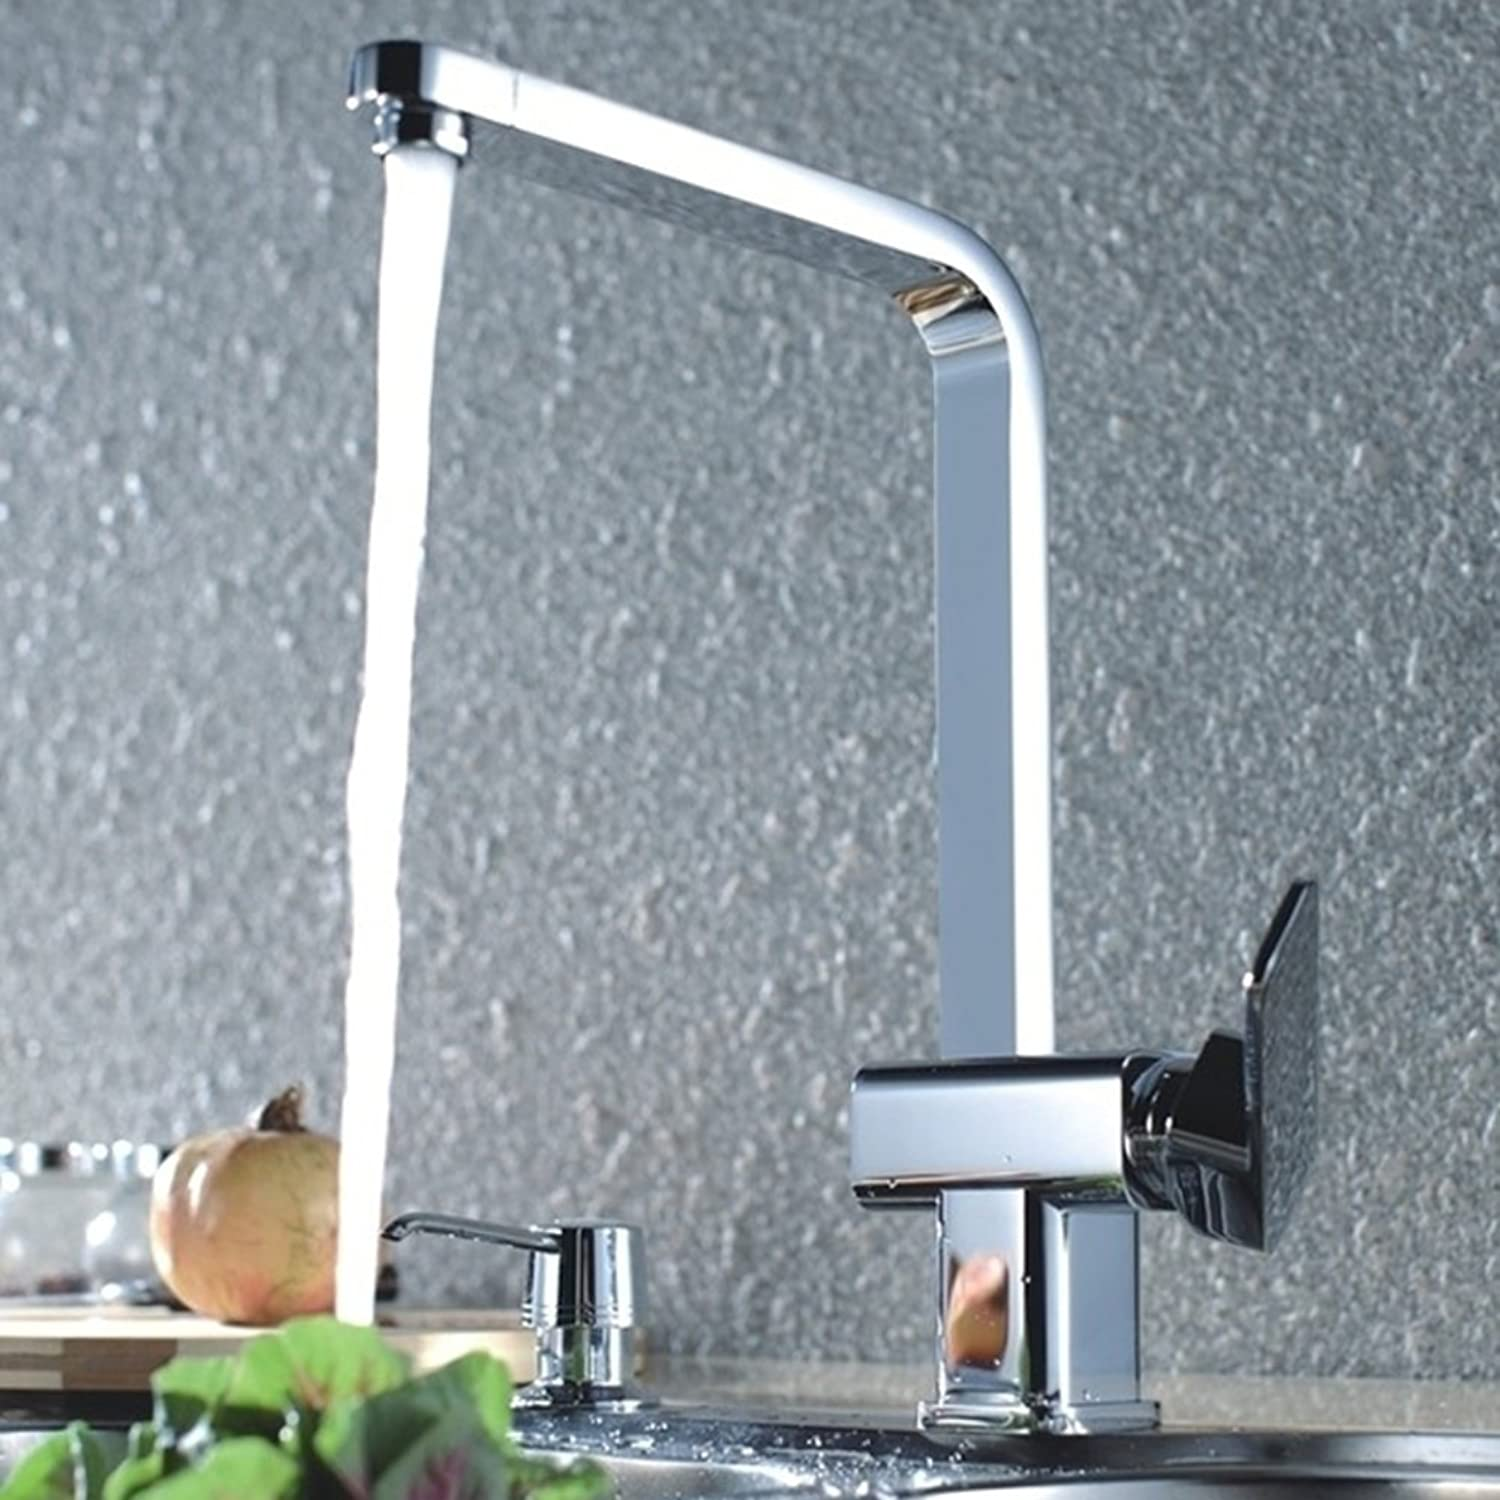 redating Kitchen Faucet Vegetables Basin Faucet Double Sink Faucet hot and Cold redary Motion-B